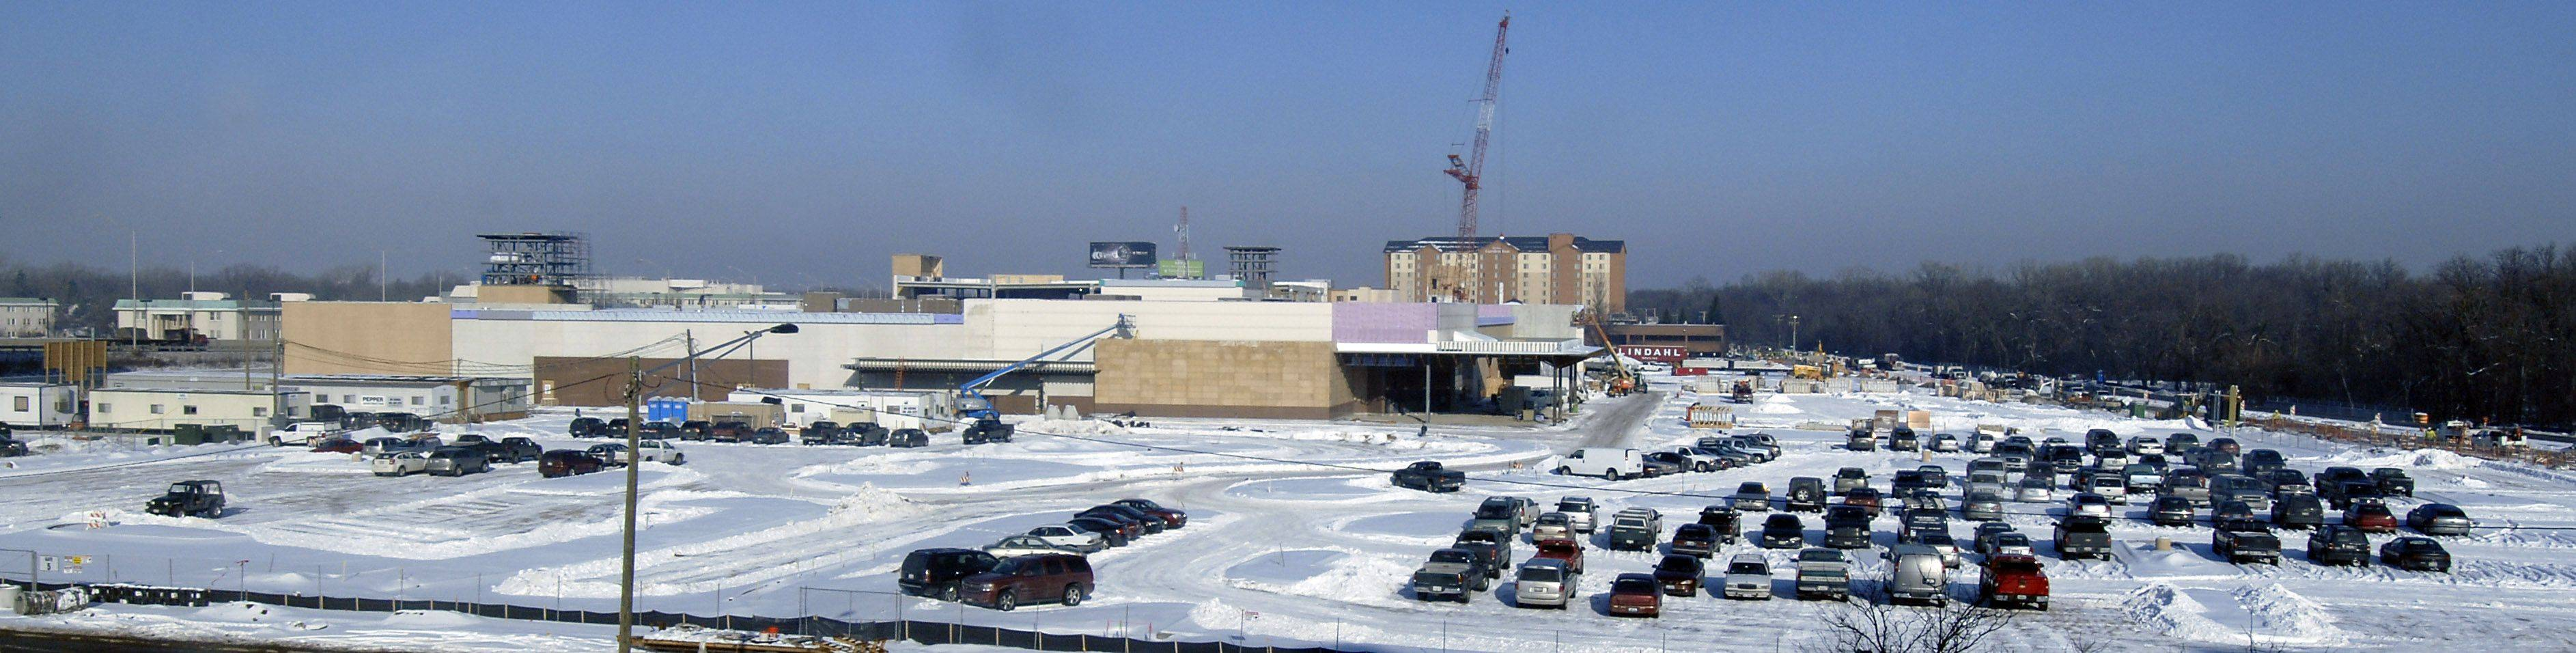 Overall view of DesPlaines casino under construction along River Road.